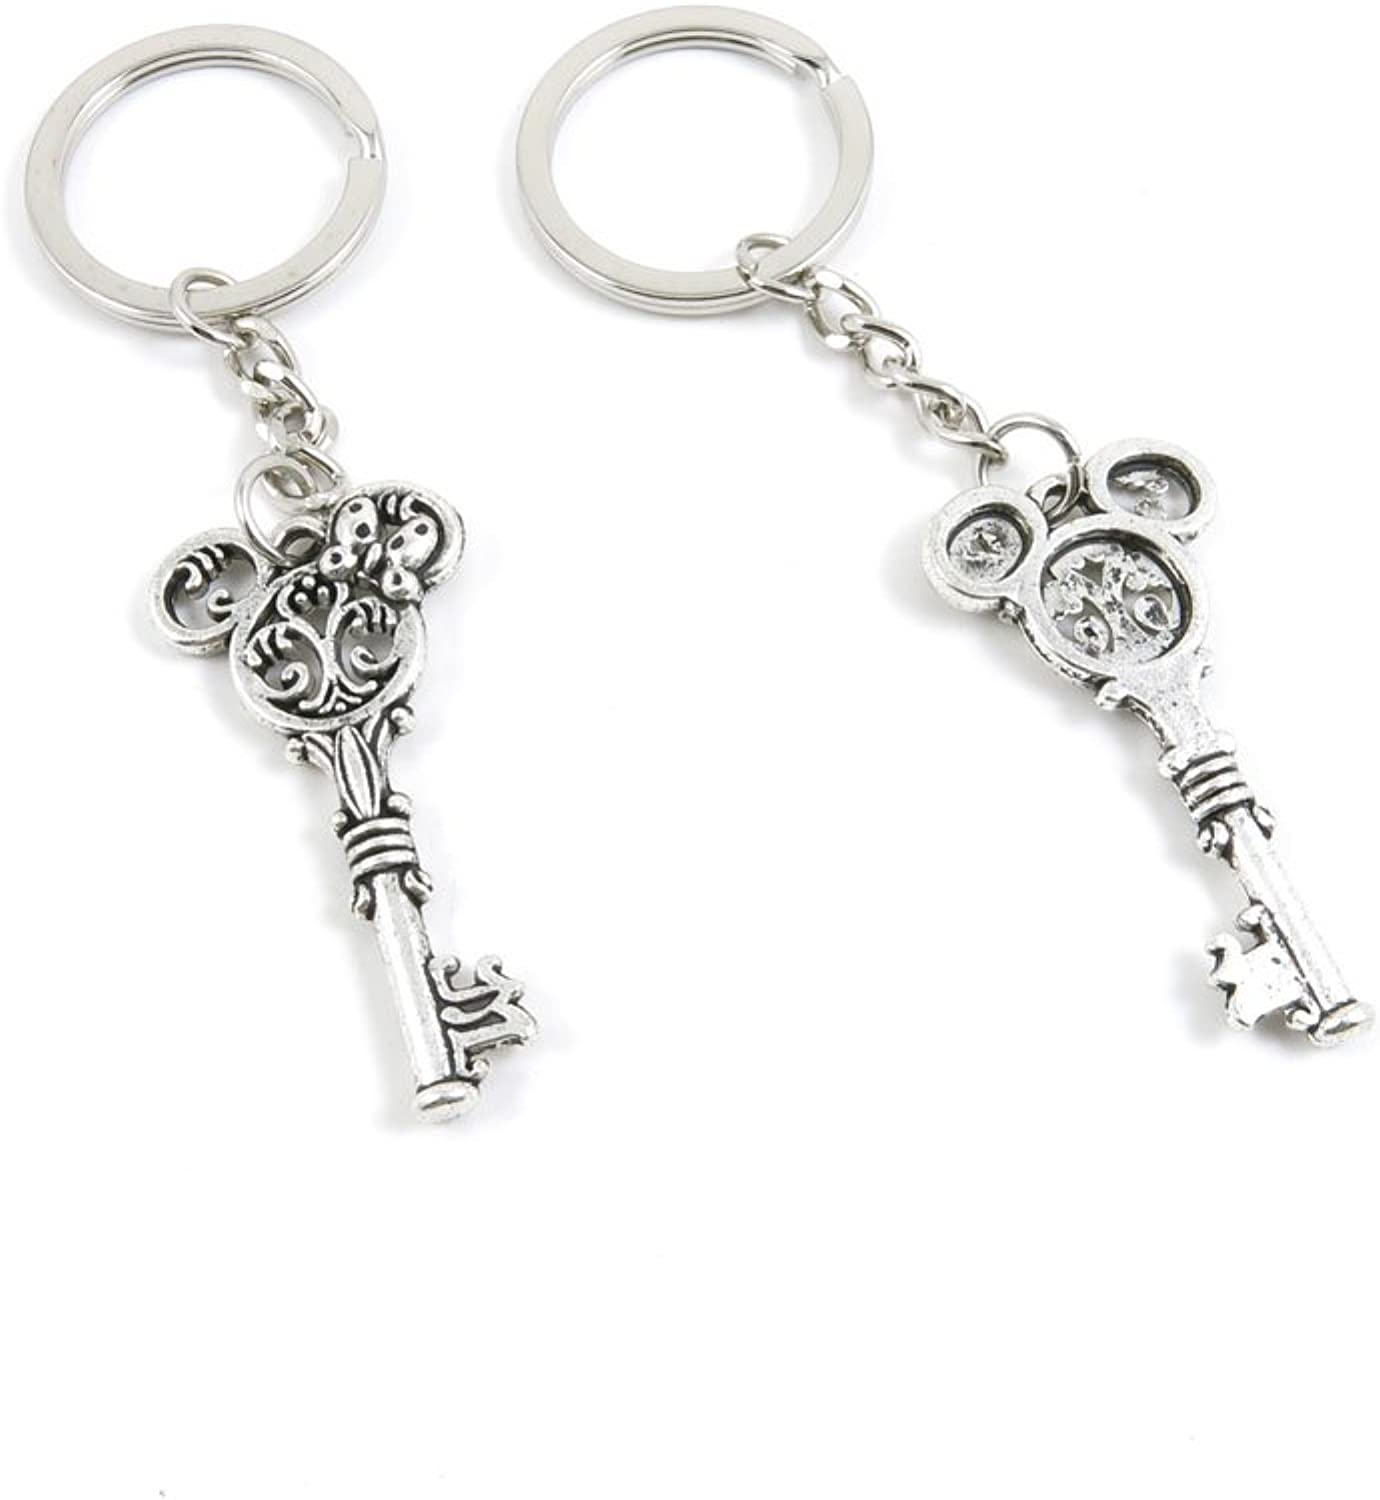 100 Pieces Keychain Keyring Door Car Key Chain Ring Tag Charms Bulk Supply Jewelry Making Clasp Findings I9IW2I Minnie Skeleton Key